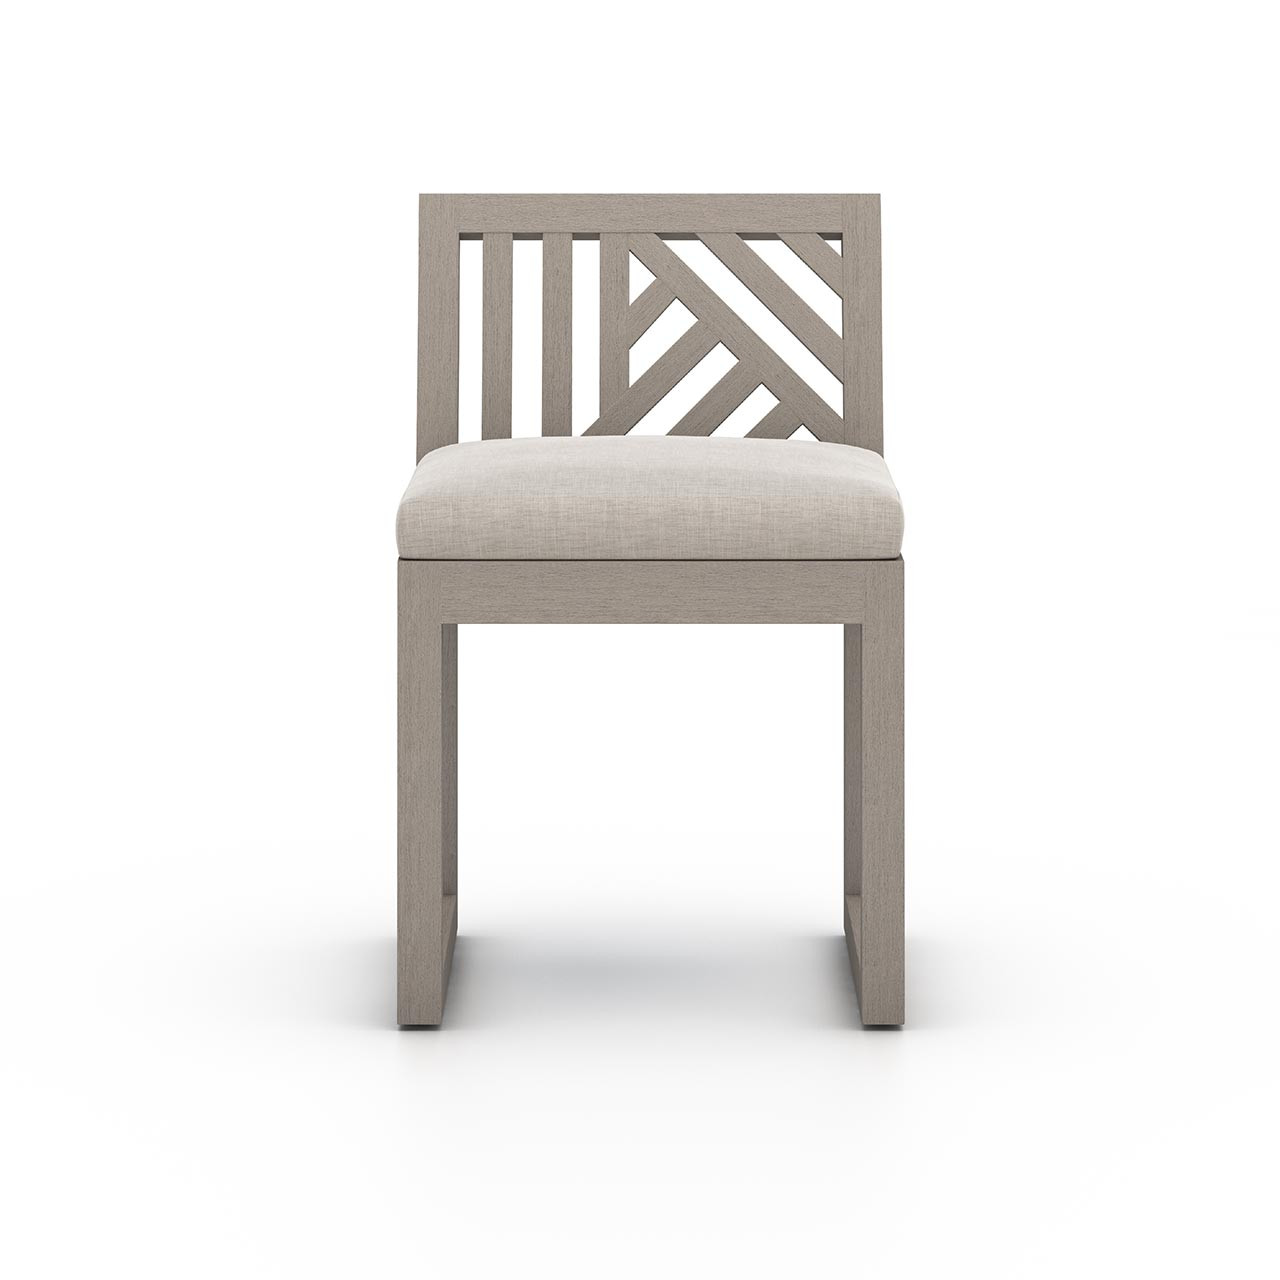 Alvey Outdoor Dining Chair, Weathered Grey